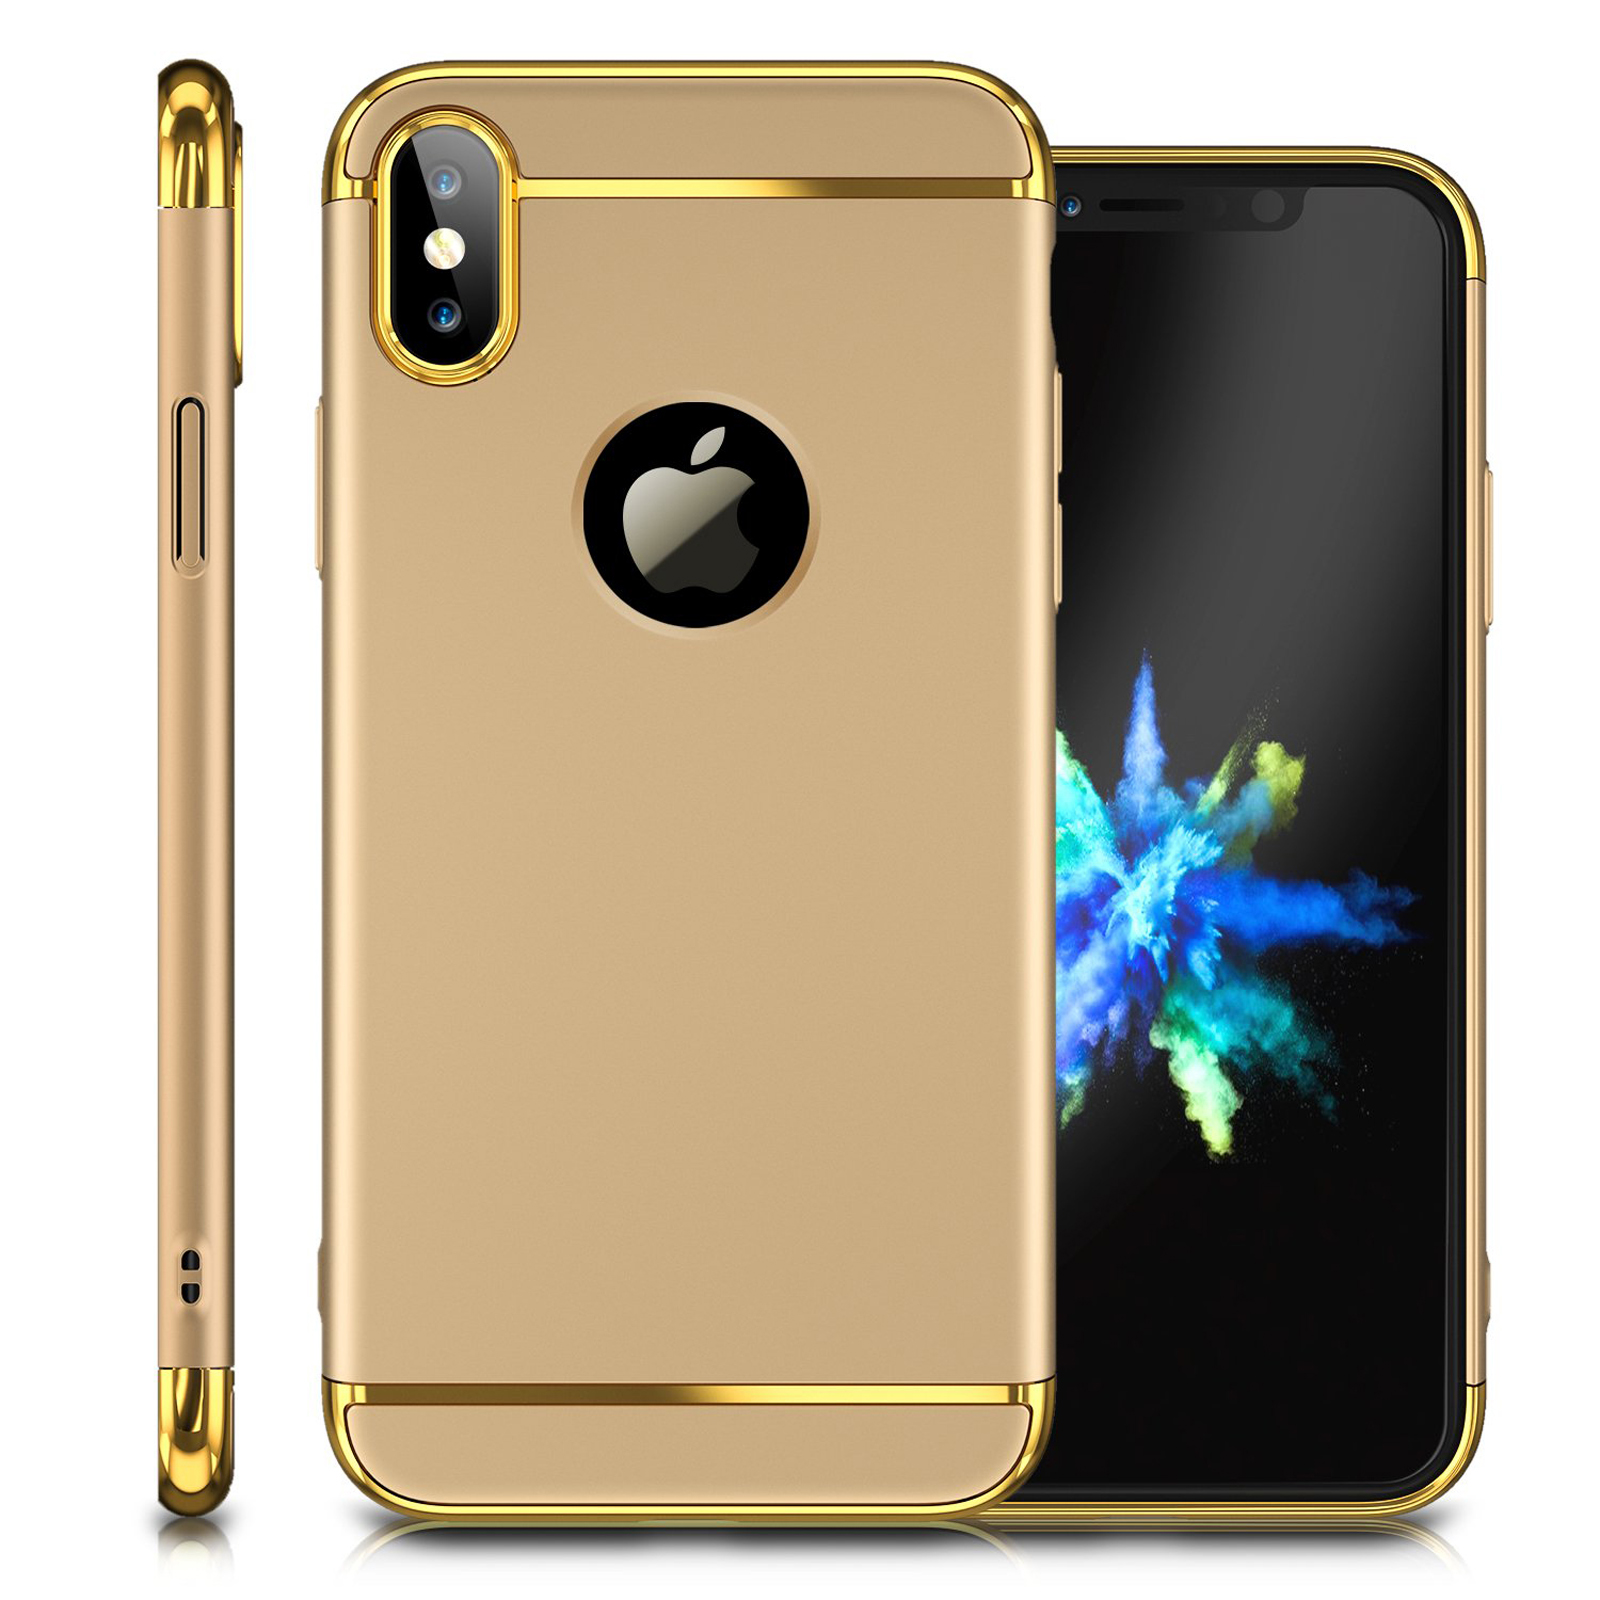 Luxury-Matte-Case-Tempered-Glass-Cover-For-Apple-iPhone-X-XS-XR-Max-10-8-7-6s-6 thumbnail 95